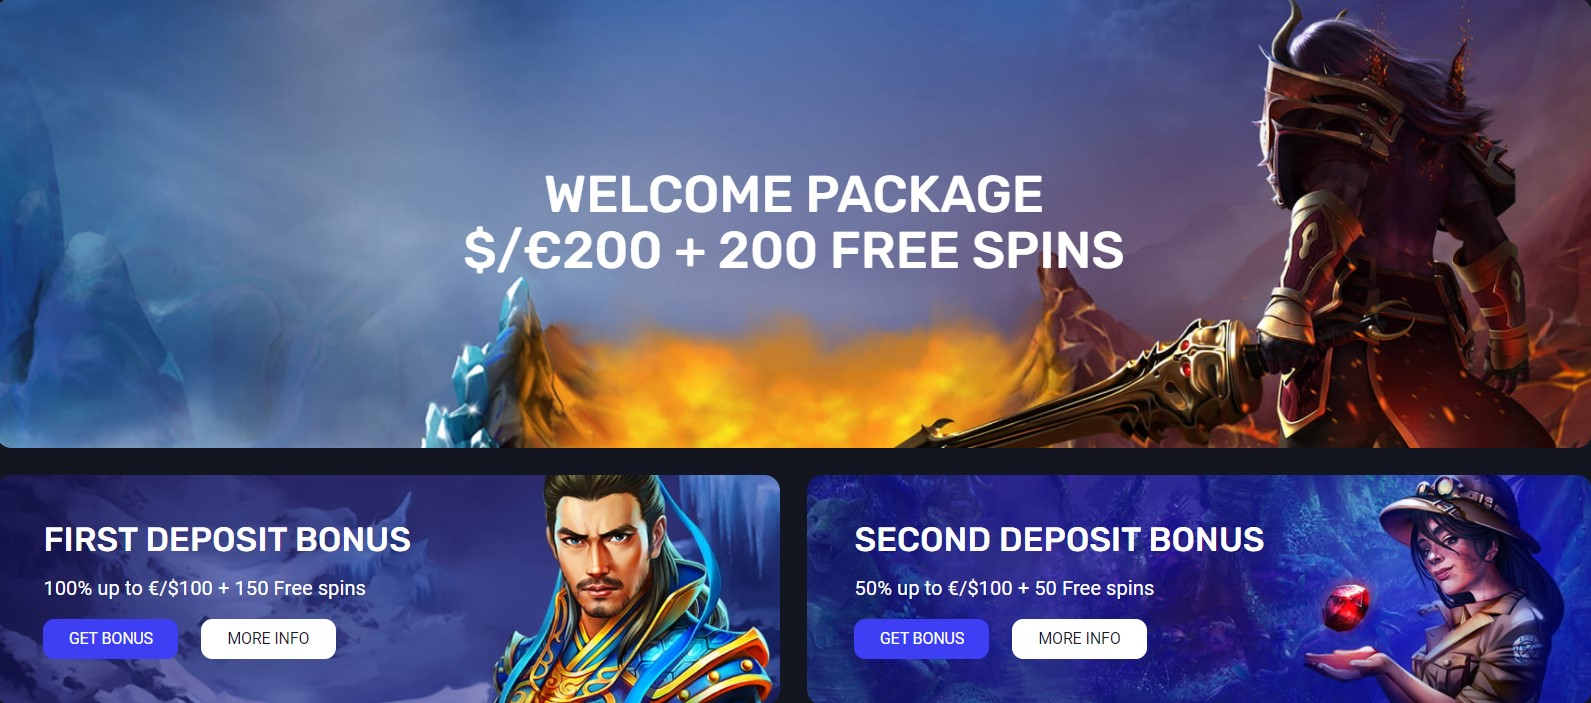 woocasino welcome package first and second deposit bonuses